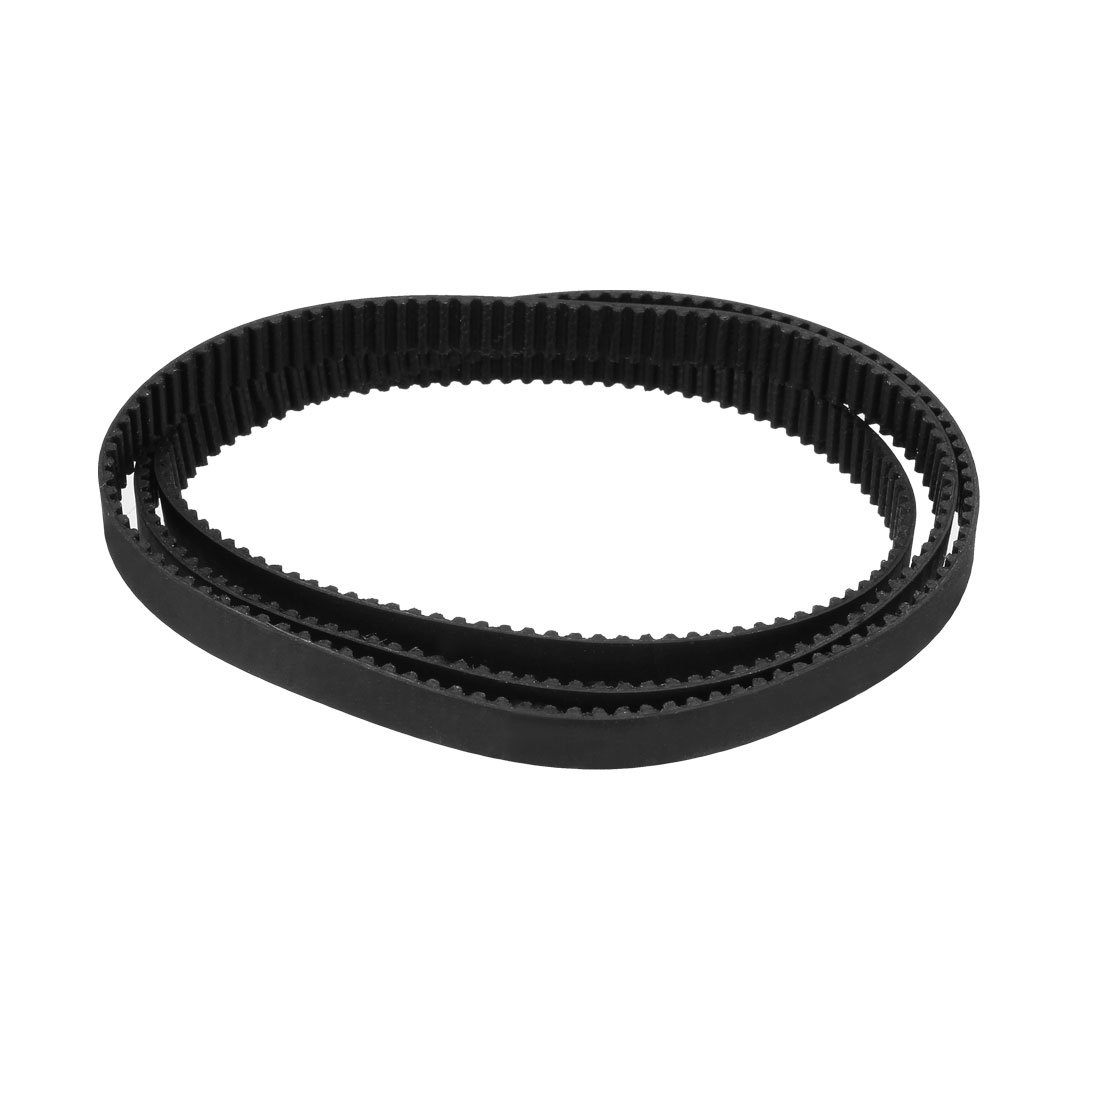 GT2 Timing Belt 600mm Closed Fit Synchronous Wheel for 3D Printer